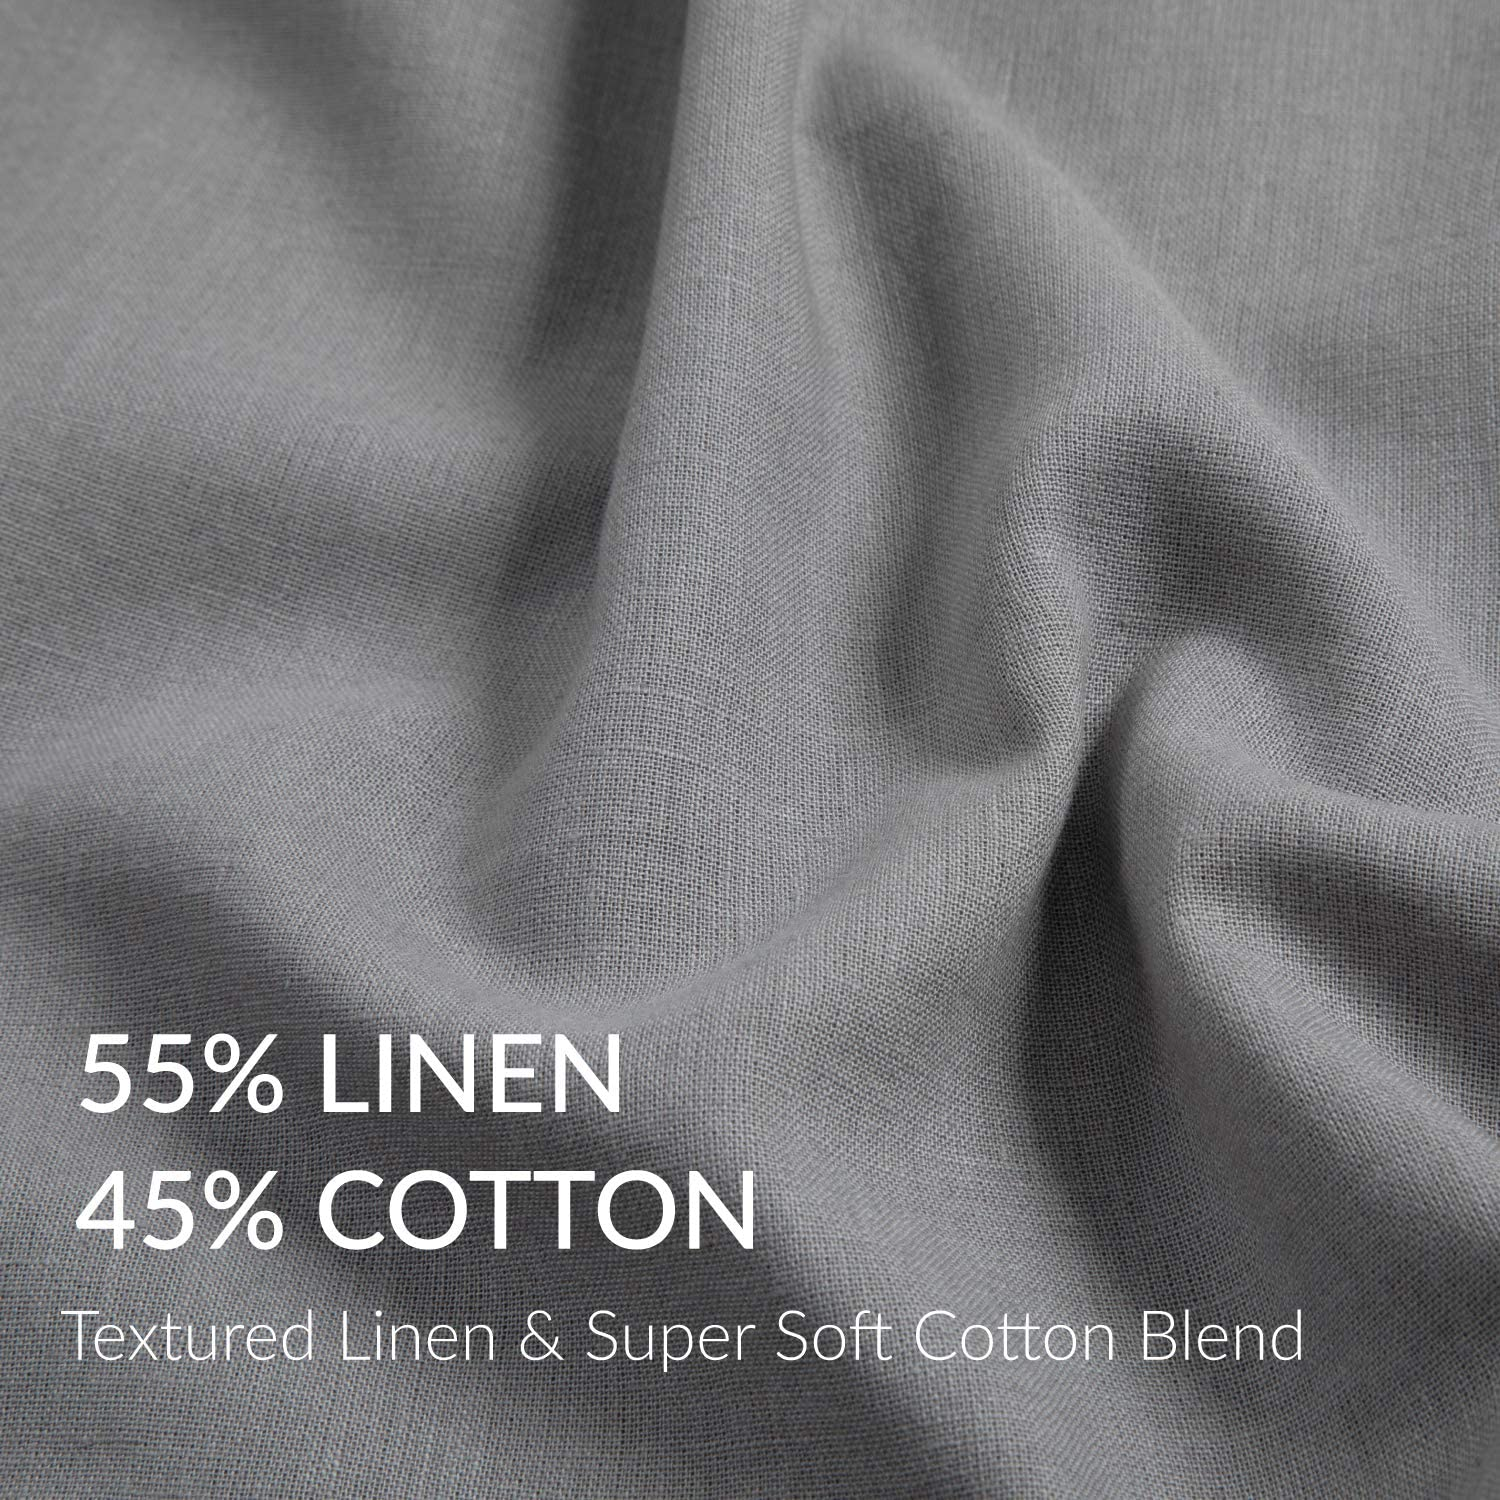 Coconut Button Closure Pillowcases for Hair and Skin Dark Grey 20x30 inches Breathable /& Moisture-Wicking Pillow Cover Bedsure 45/% Cotton /& 55/% Linen Pillow Cases Set of 2 Queen Size